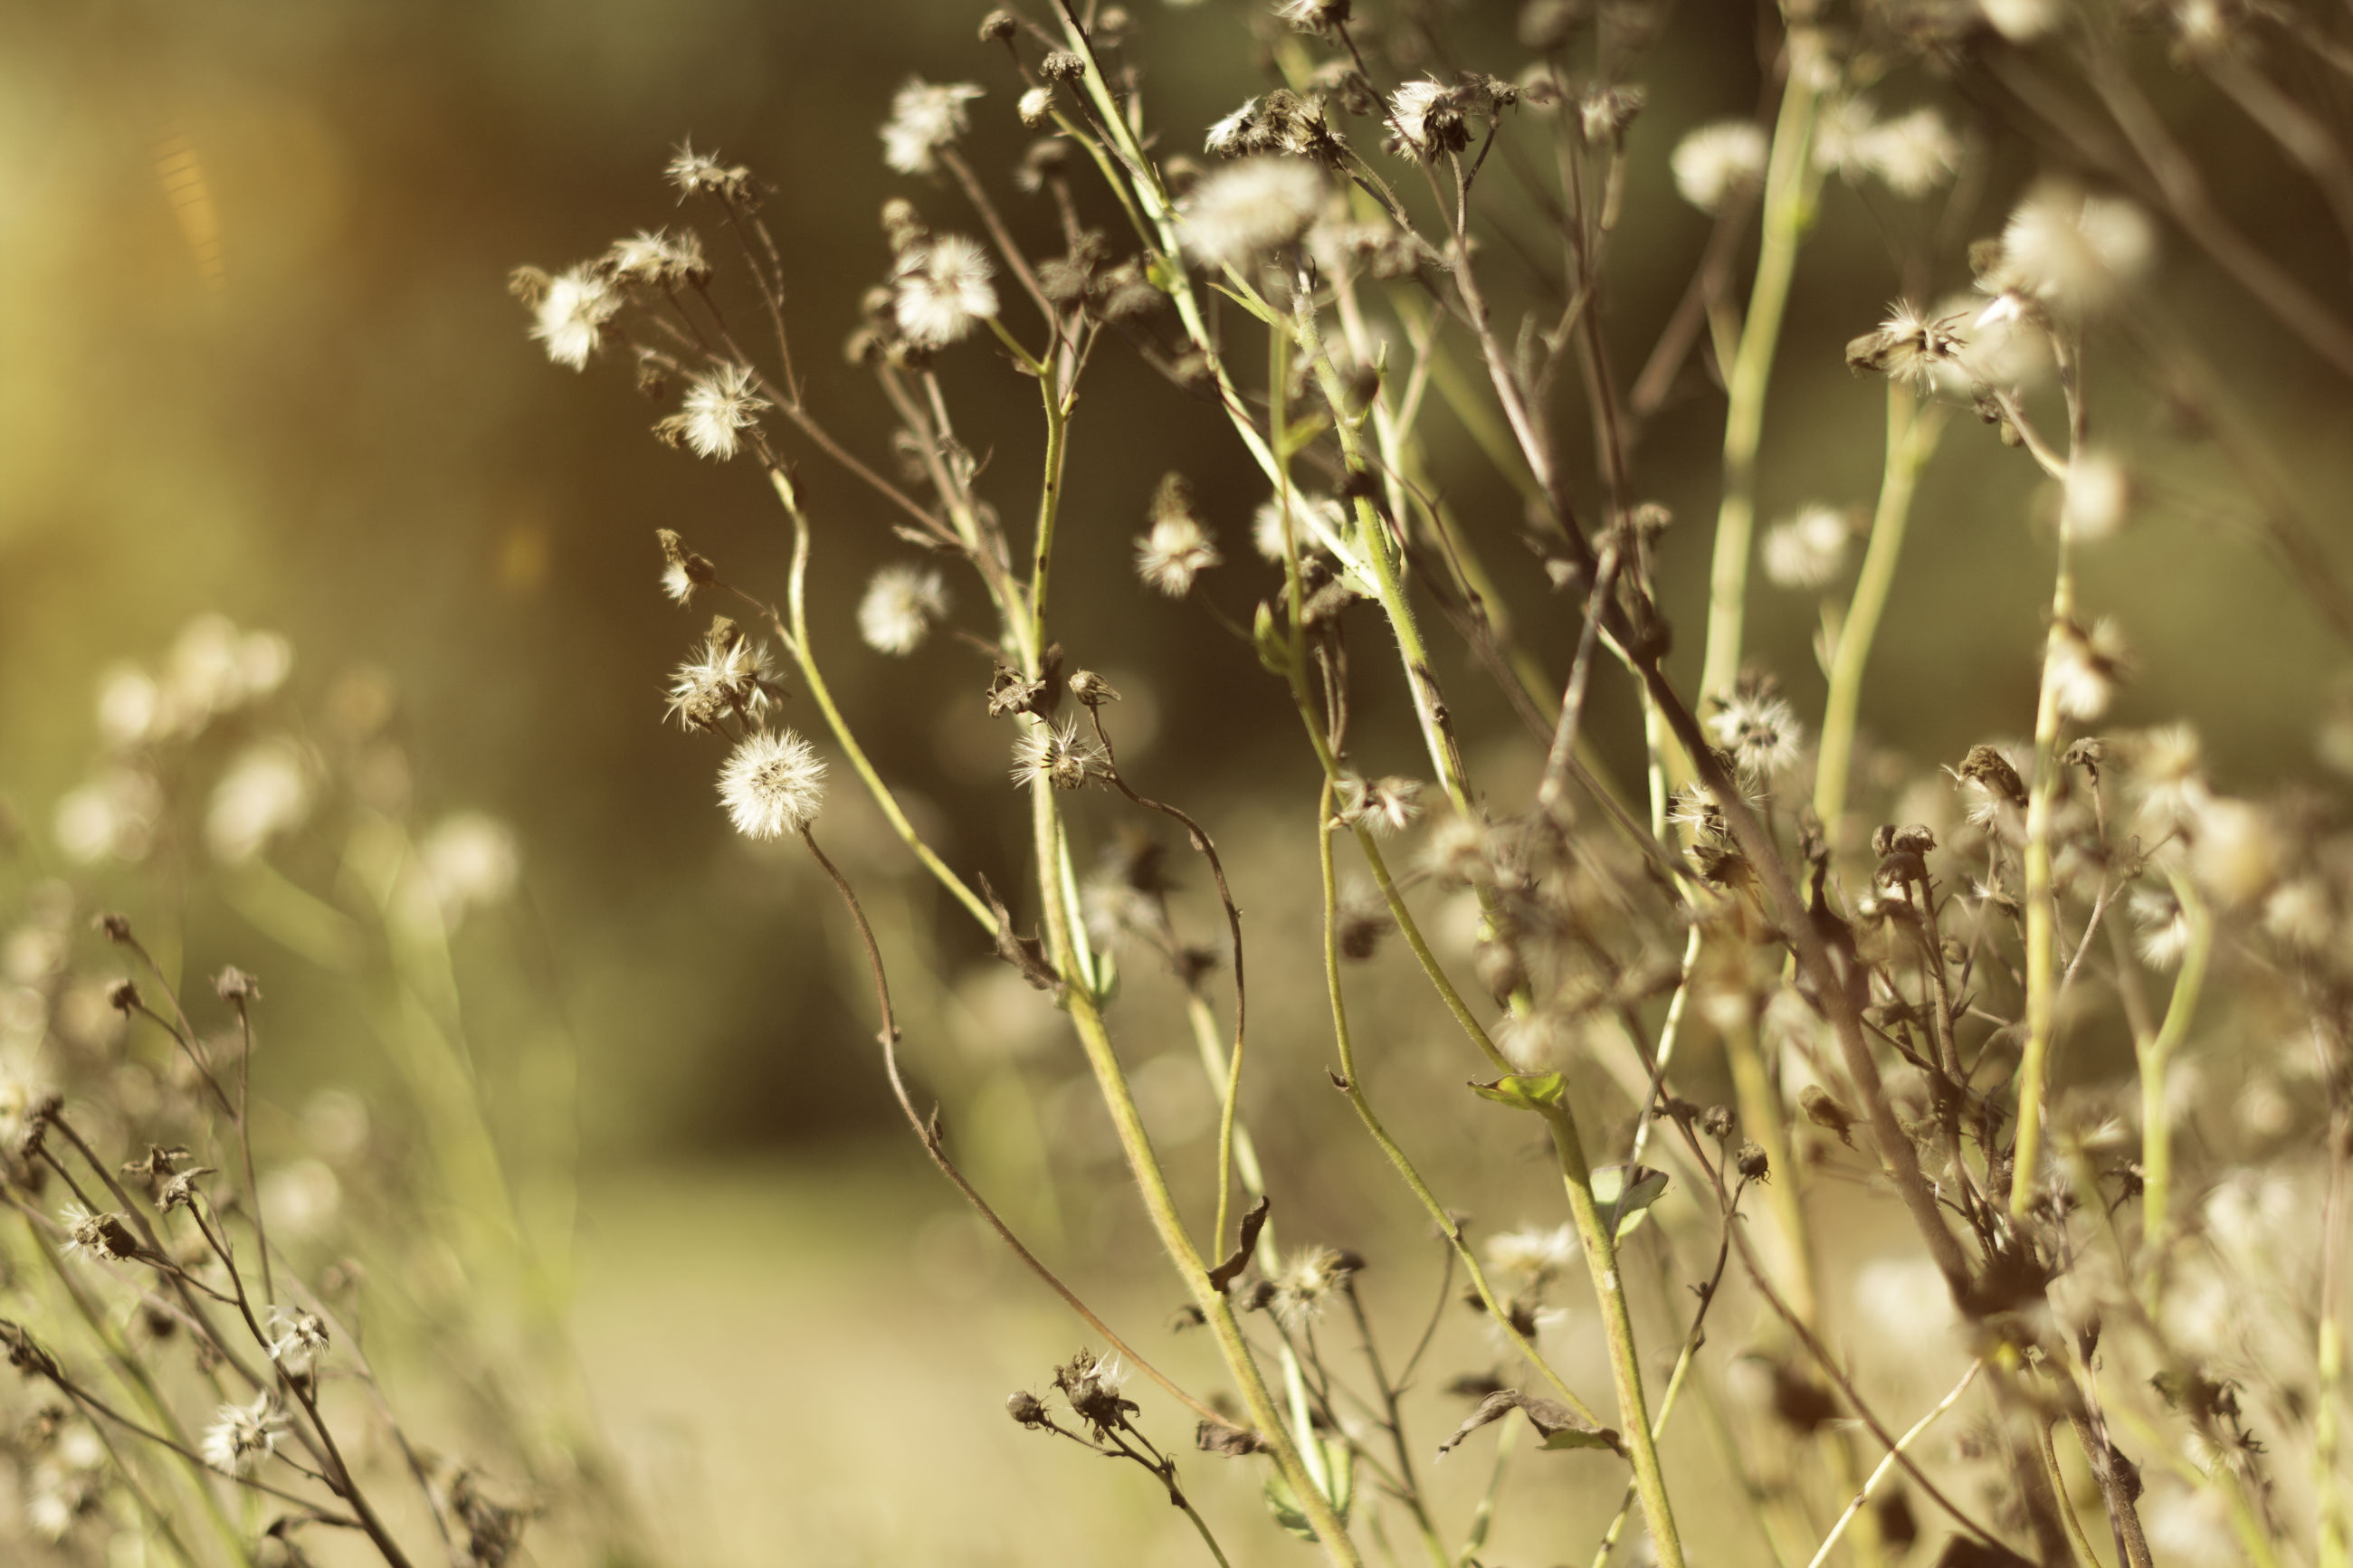 nature, growth, plant, beauty in nature, close-up, tranquility, no people, outdoors, tree, day, grass, timothy grass